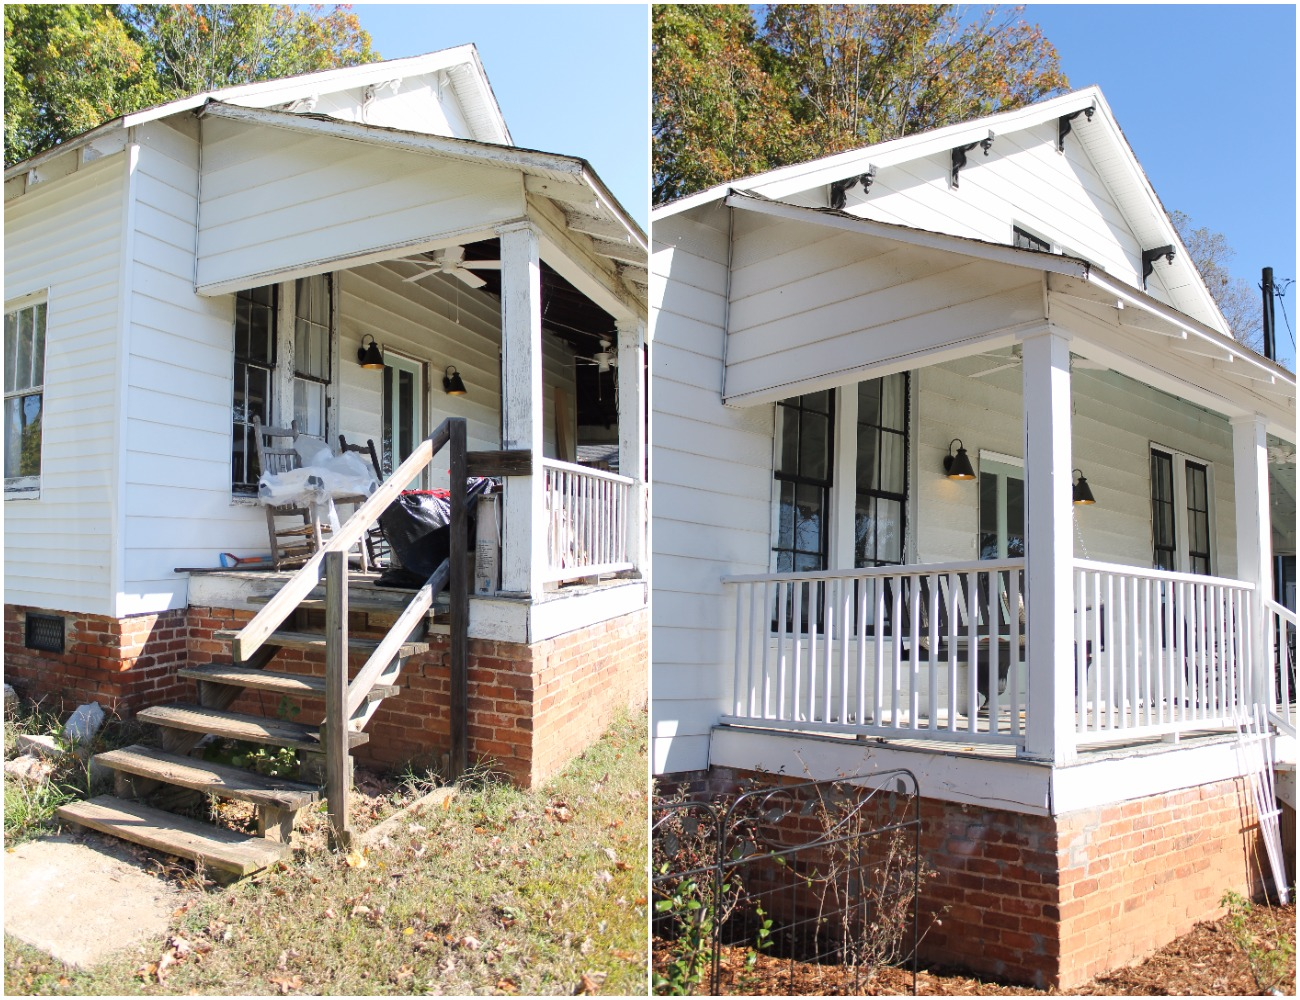 Elizabeth Burns Design  Budget-Friendly Fixer Upper Farmhouse Before and After House Flip - DIY Curb Appeal White Farm House Cottage with Black Windows and Wide Front Steps to Front Porch - Wythe Blue Door (1).jpg